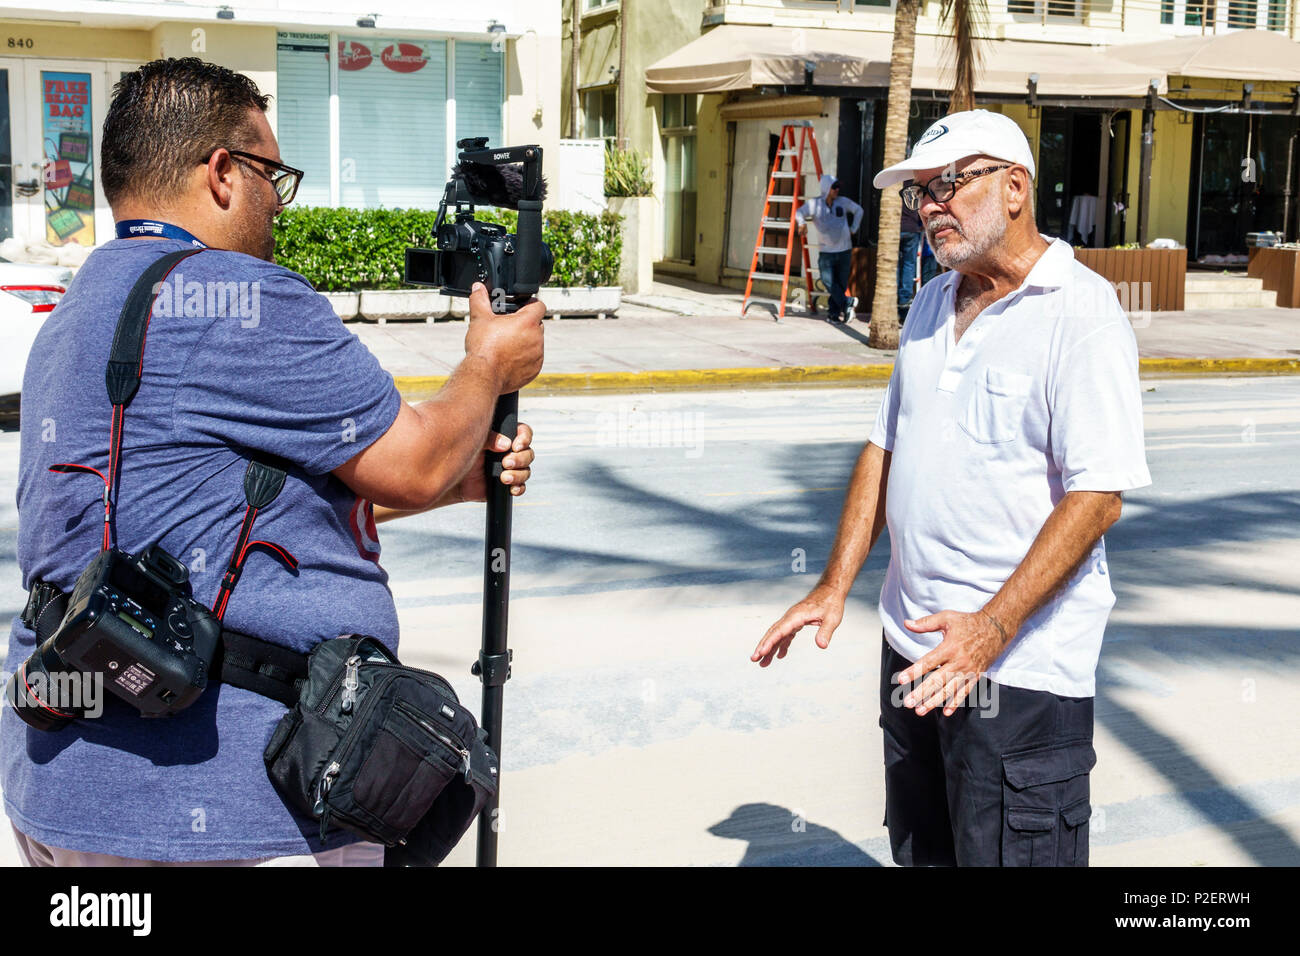 Florida Miami Beach Hispanic senior man reporter social media taping reporting interviewing camera blogger podcast interview interviewer - Stock Image